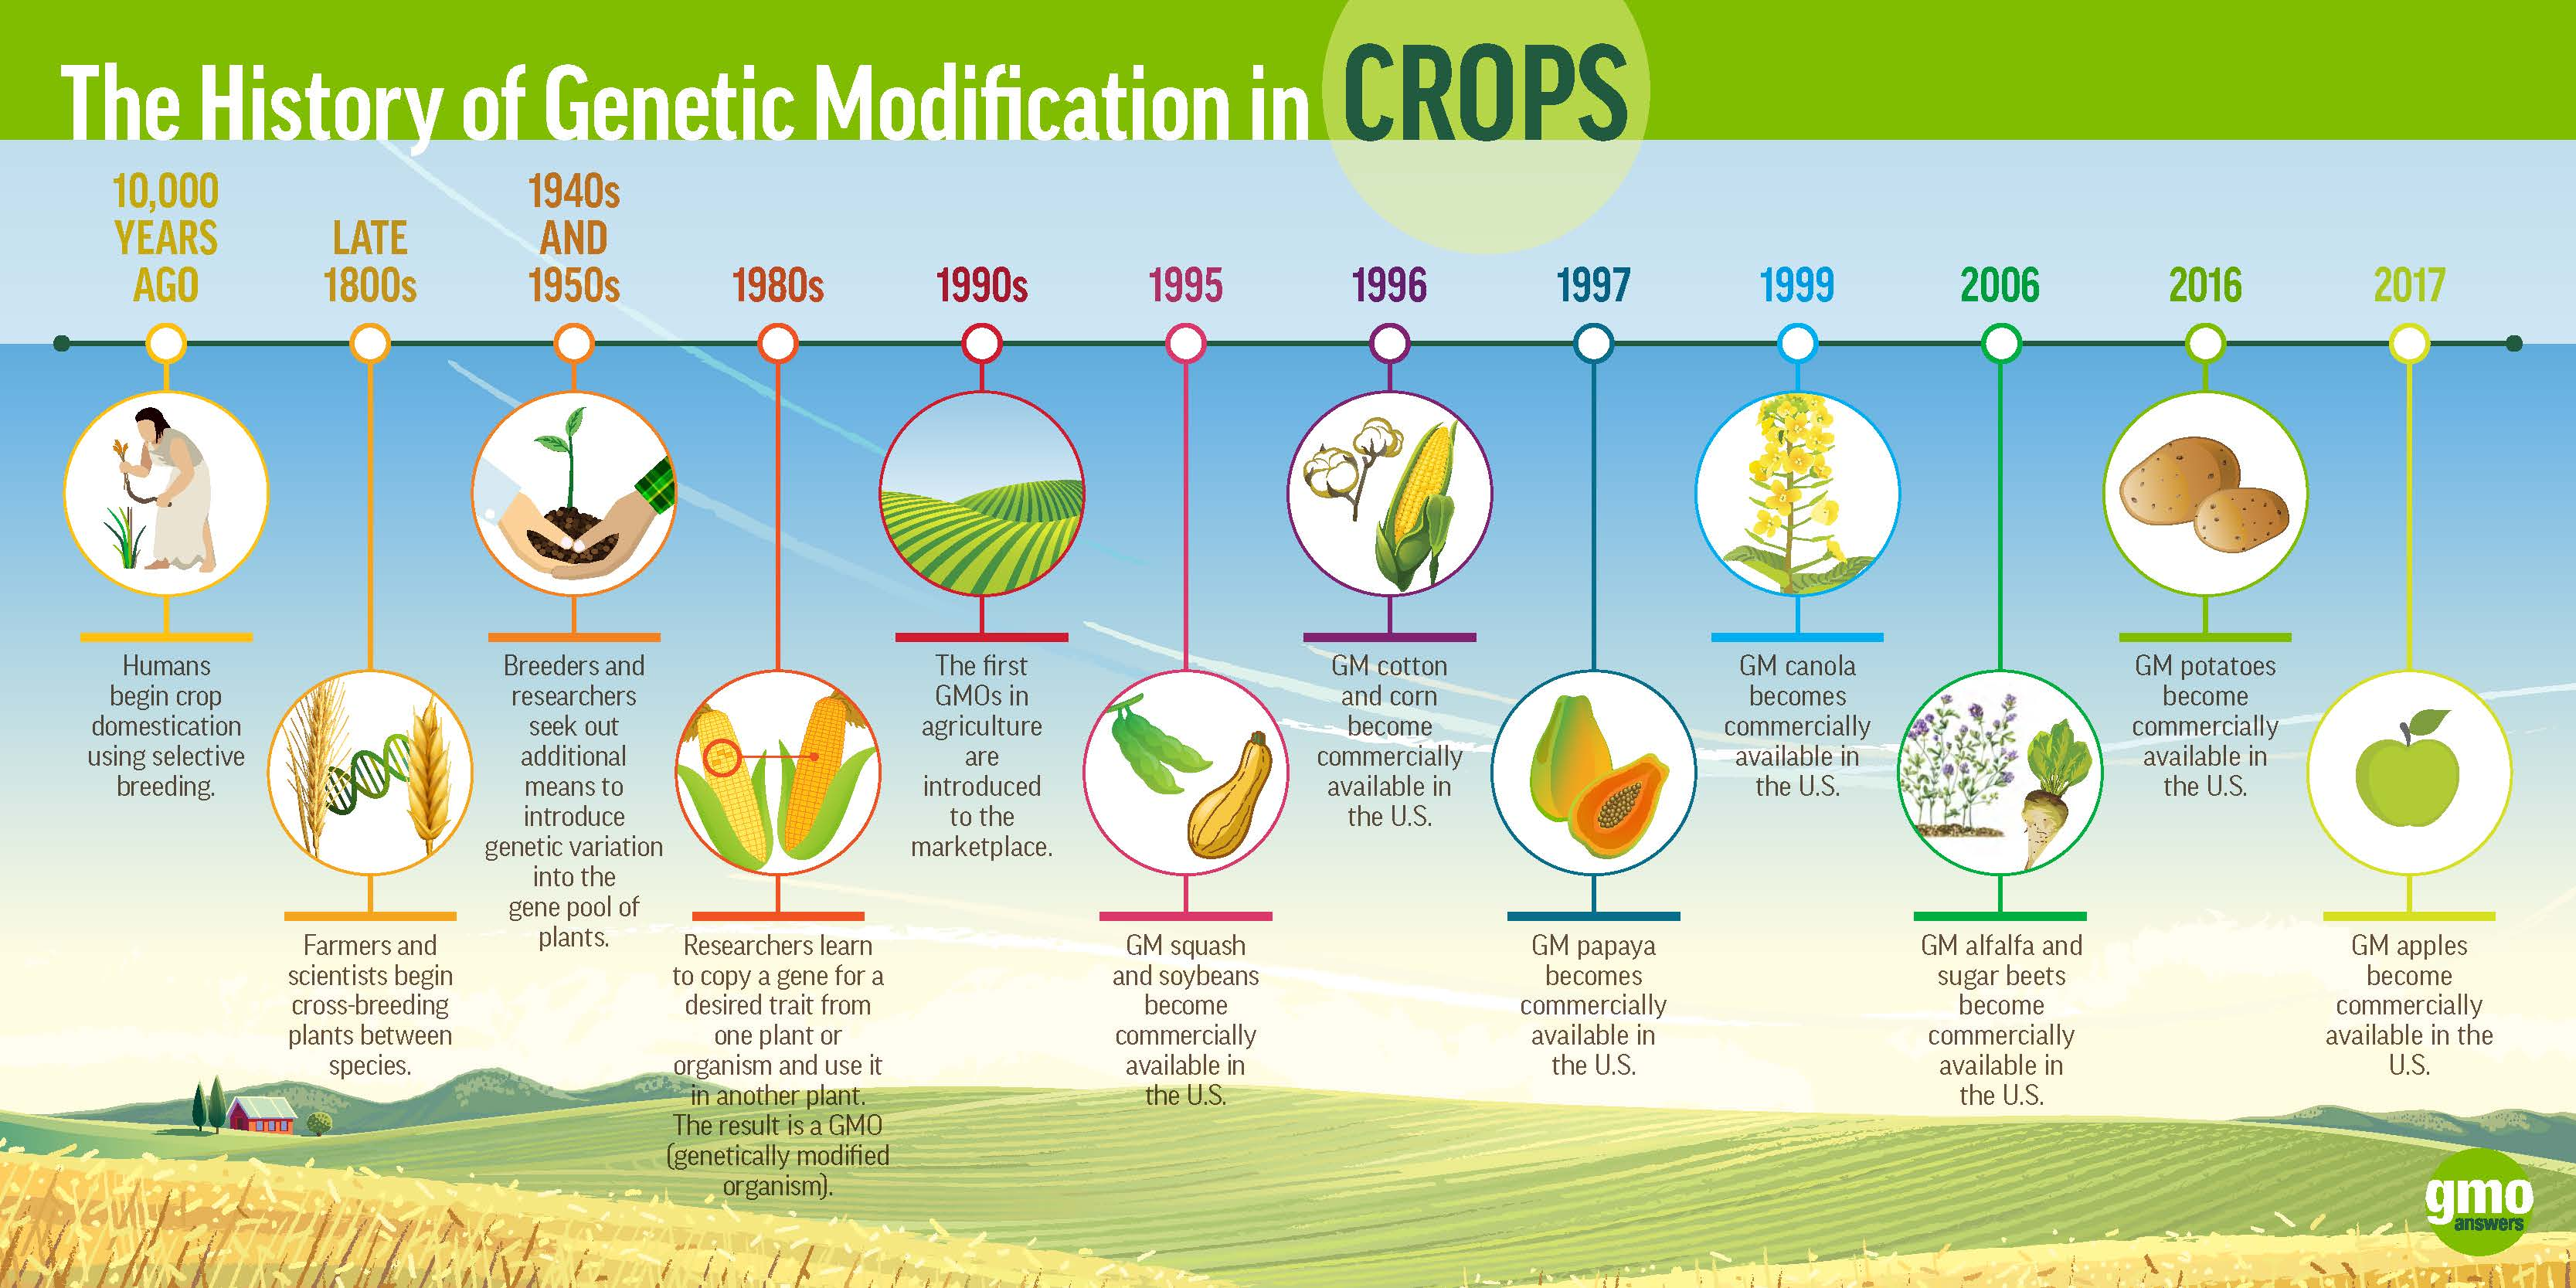 INFOGRAPHIC: The History of Genetic Modification in Crops